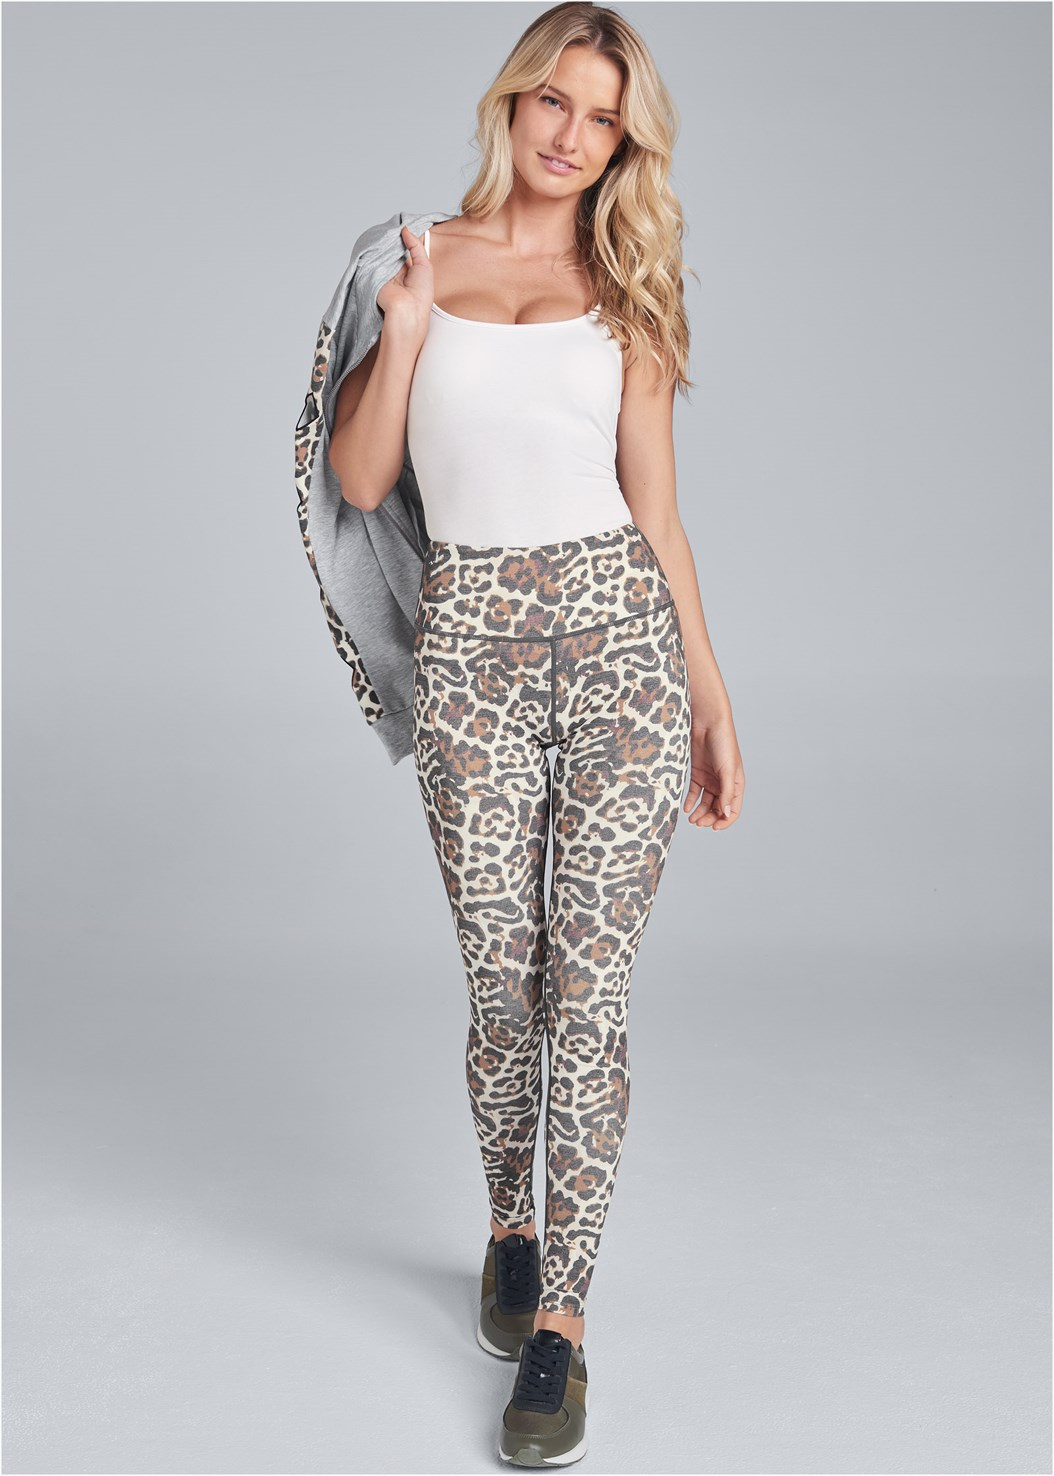 High Waisted Active Legging,Basic Cami Two Pack,Leopard Cut-Out Jacket,Strapless Bra With Geo Lace,Animal Print Sneakers